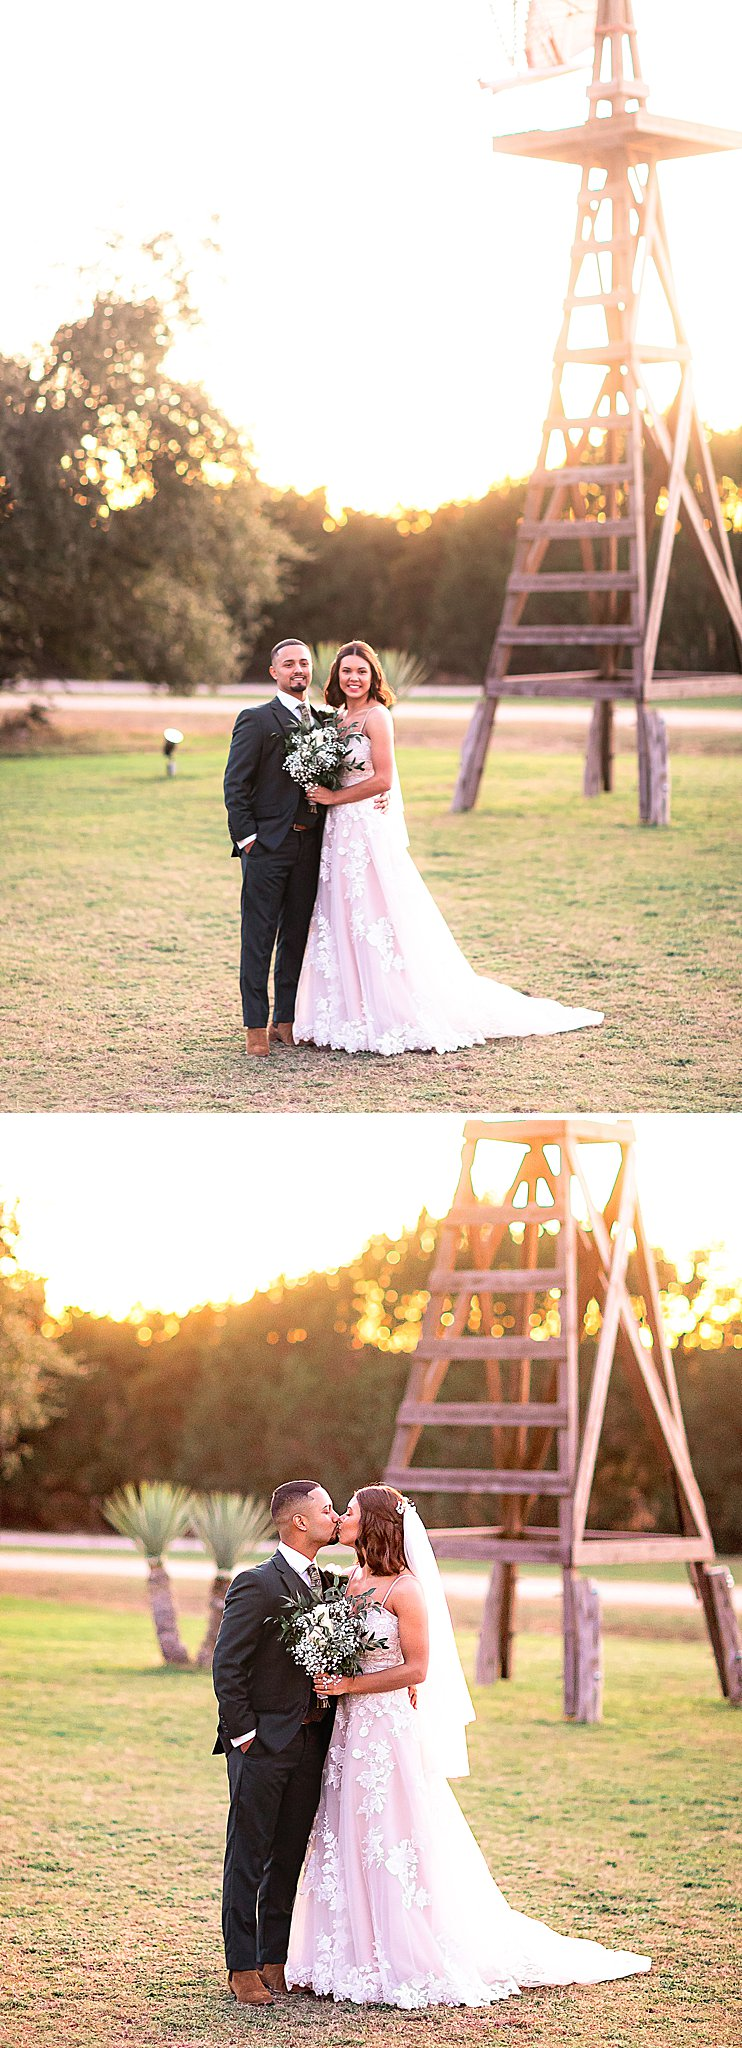 Carly-Barton-Photography-Texas-Wedding-Photographer-Western-Sky-Wedding-Event-Venue-Emerald-Green-Theme_0083.jpg